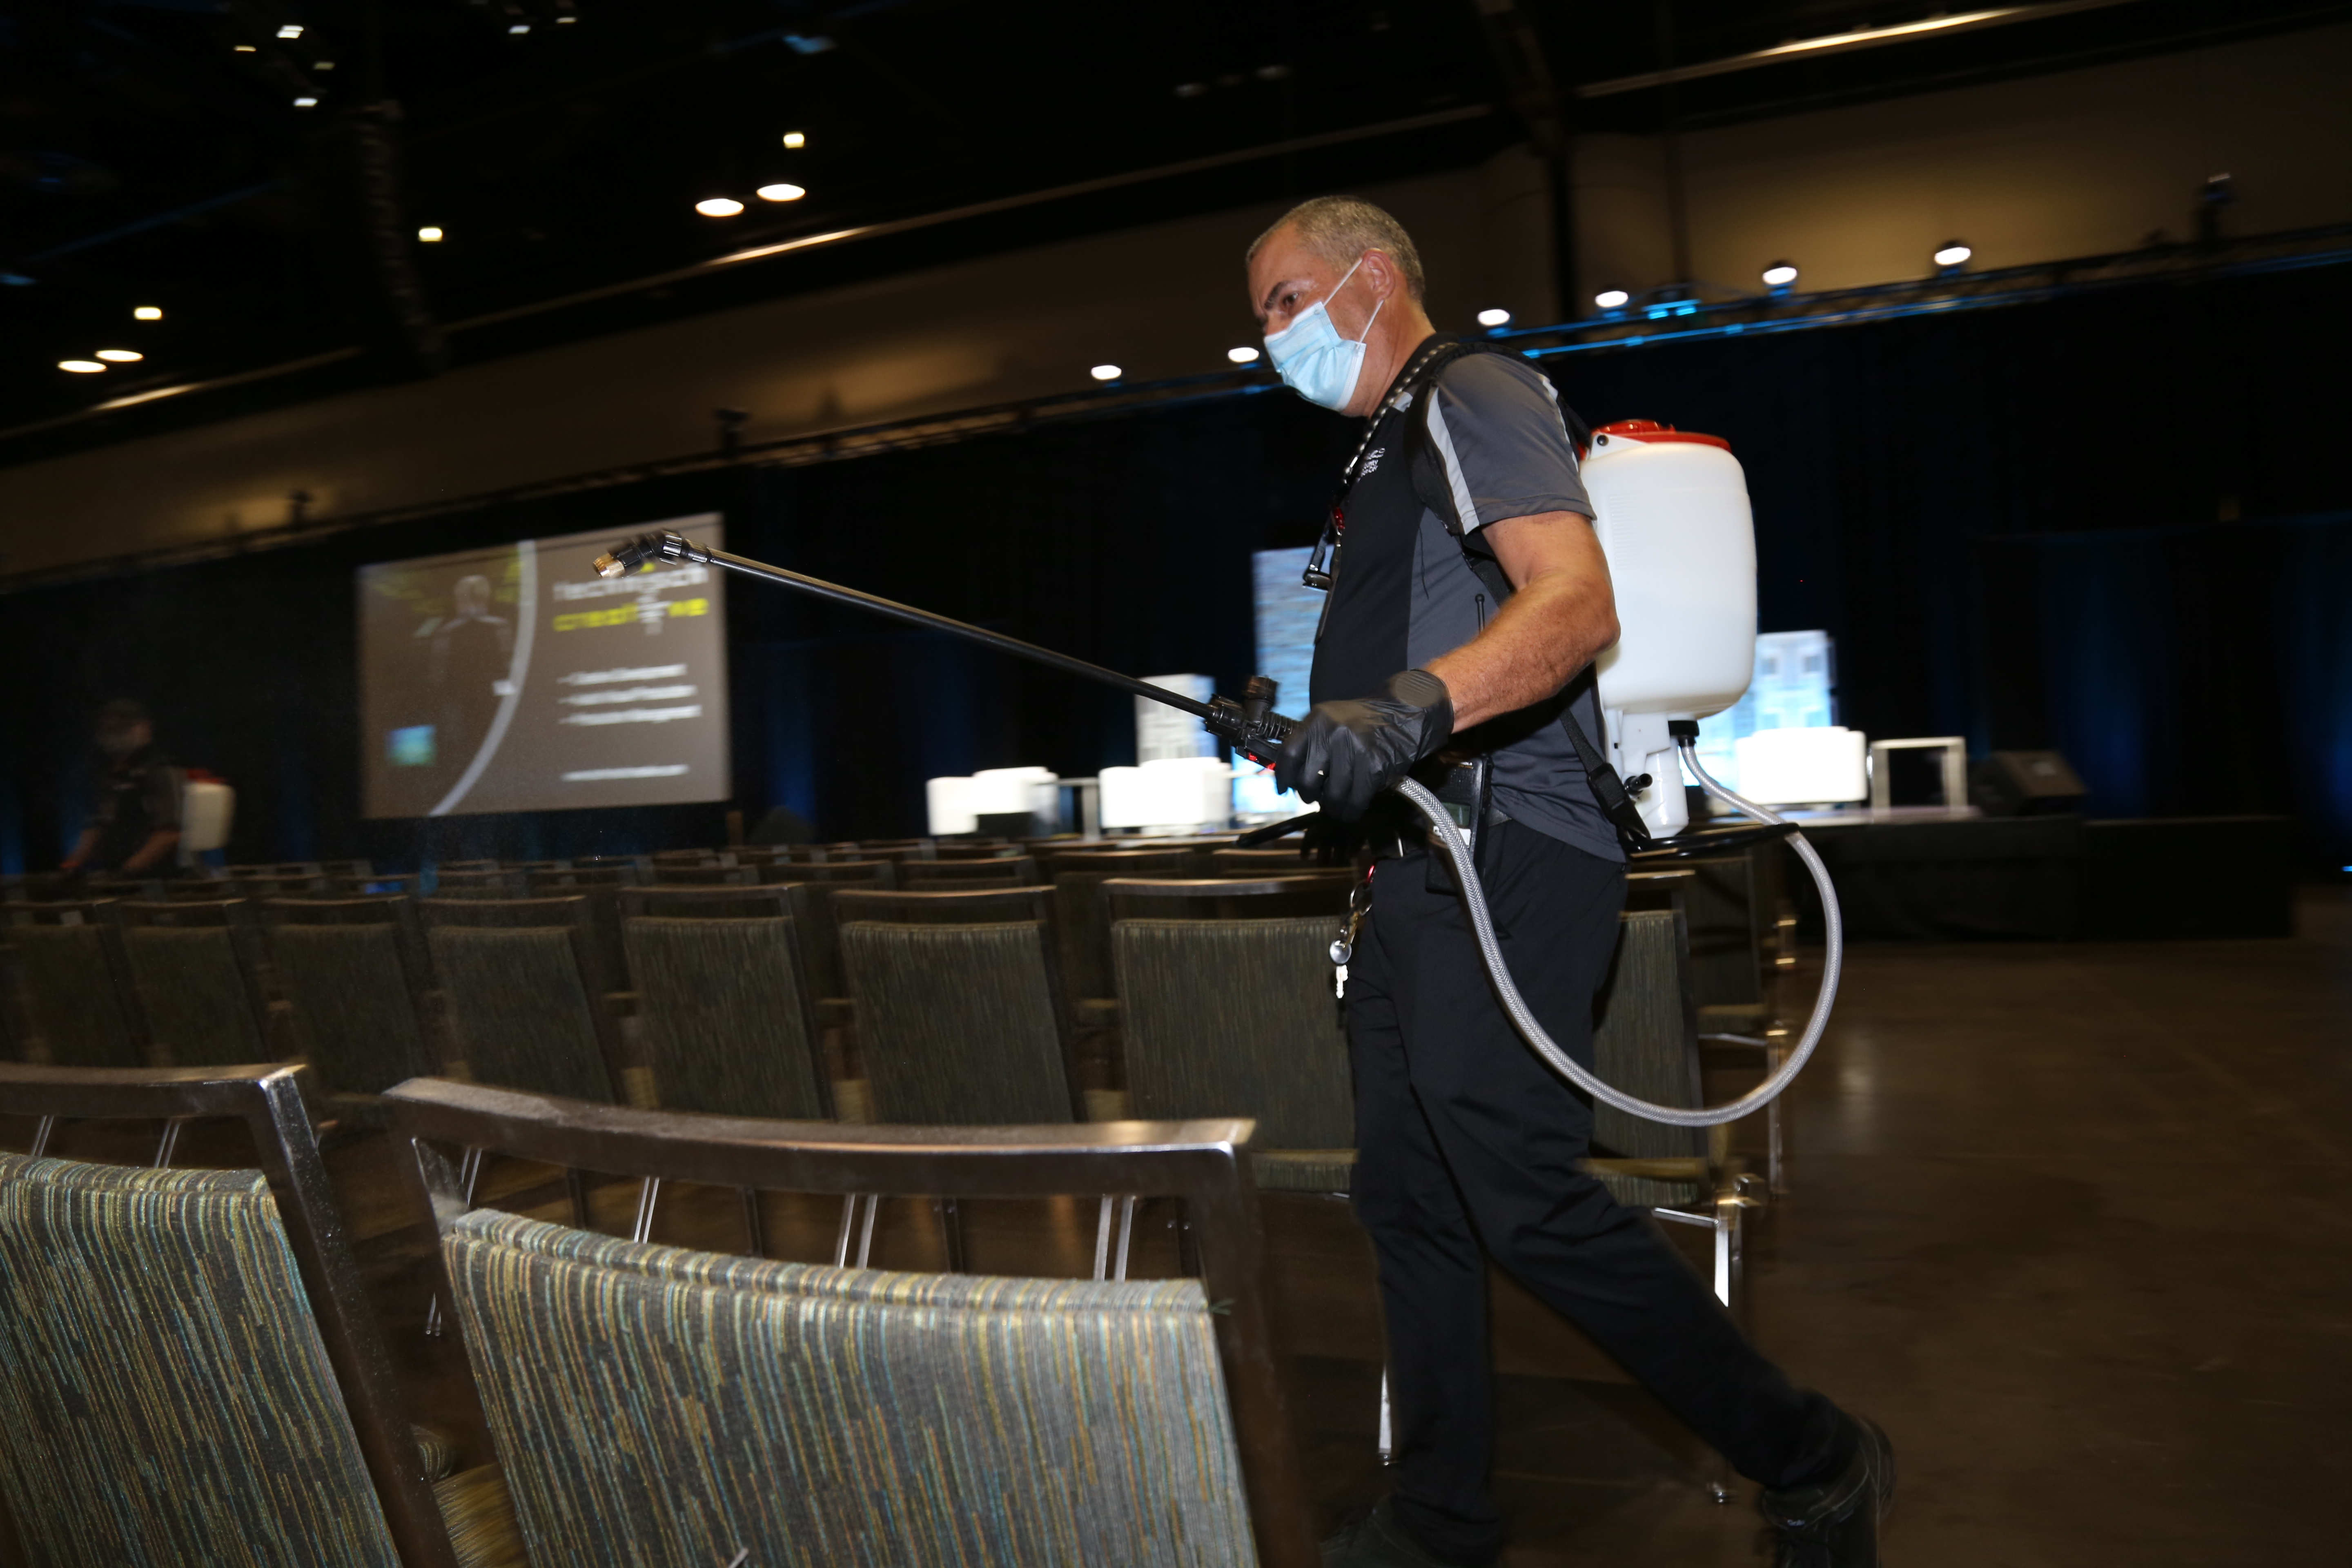 OCCC employee sanitizing the Together Again Expo General Session Area with an electrostatic fogger